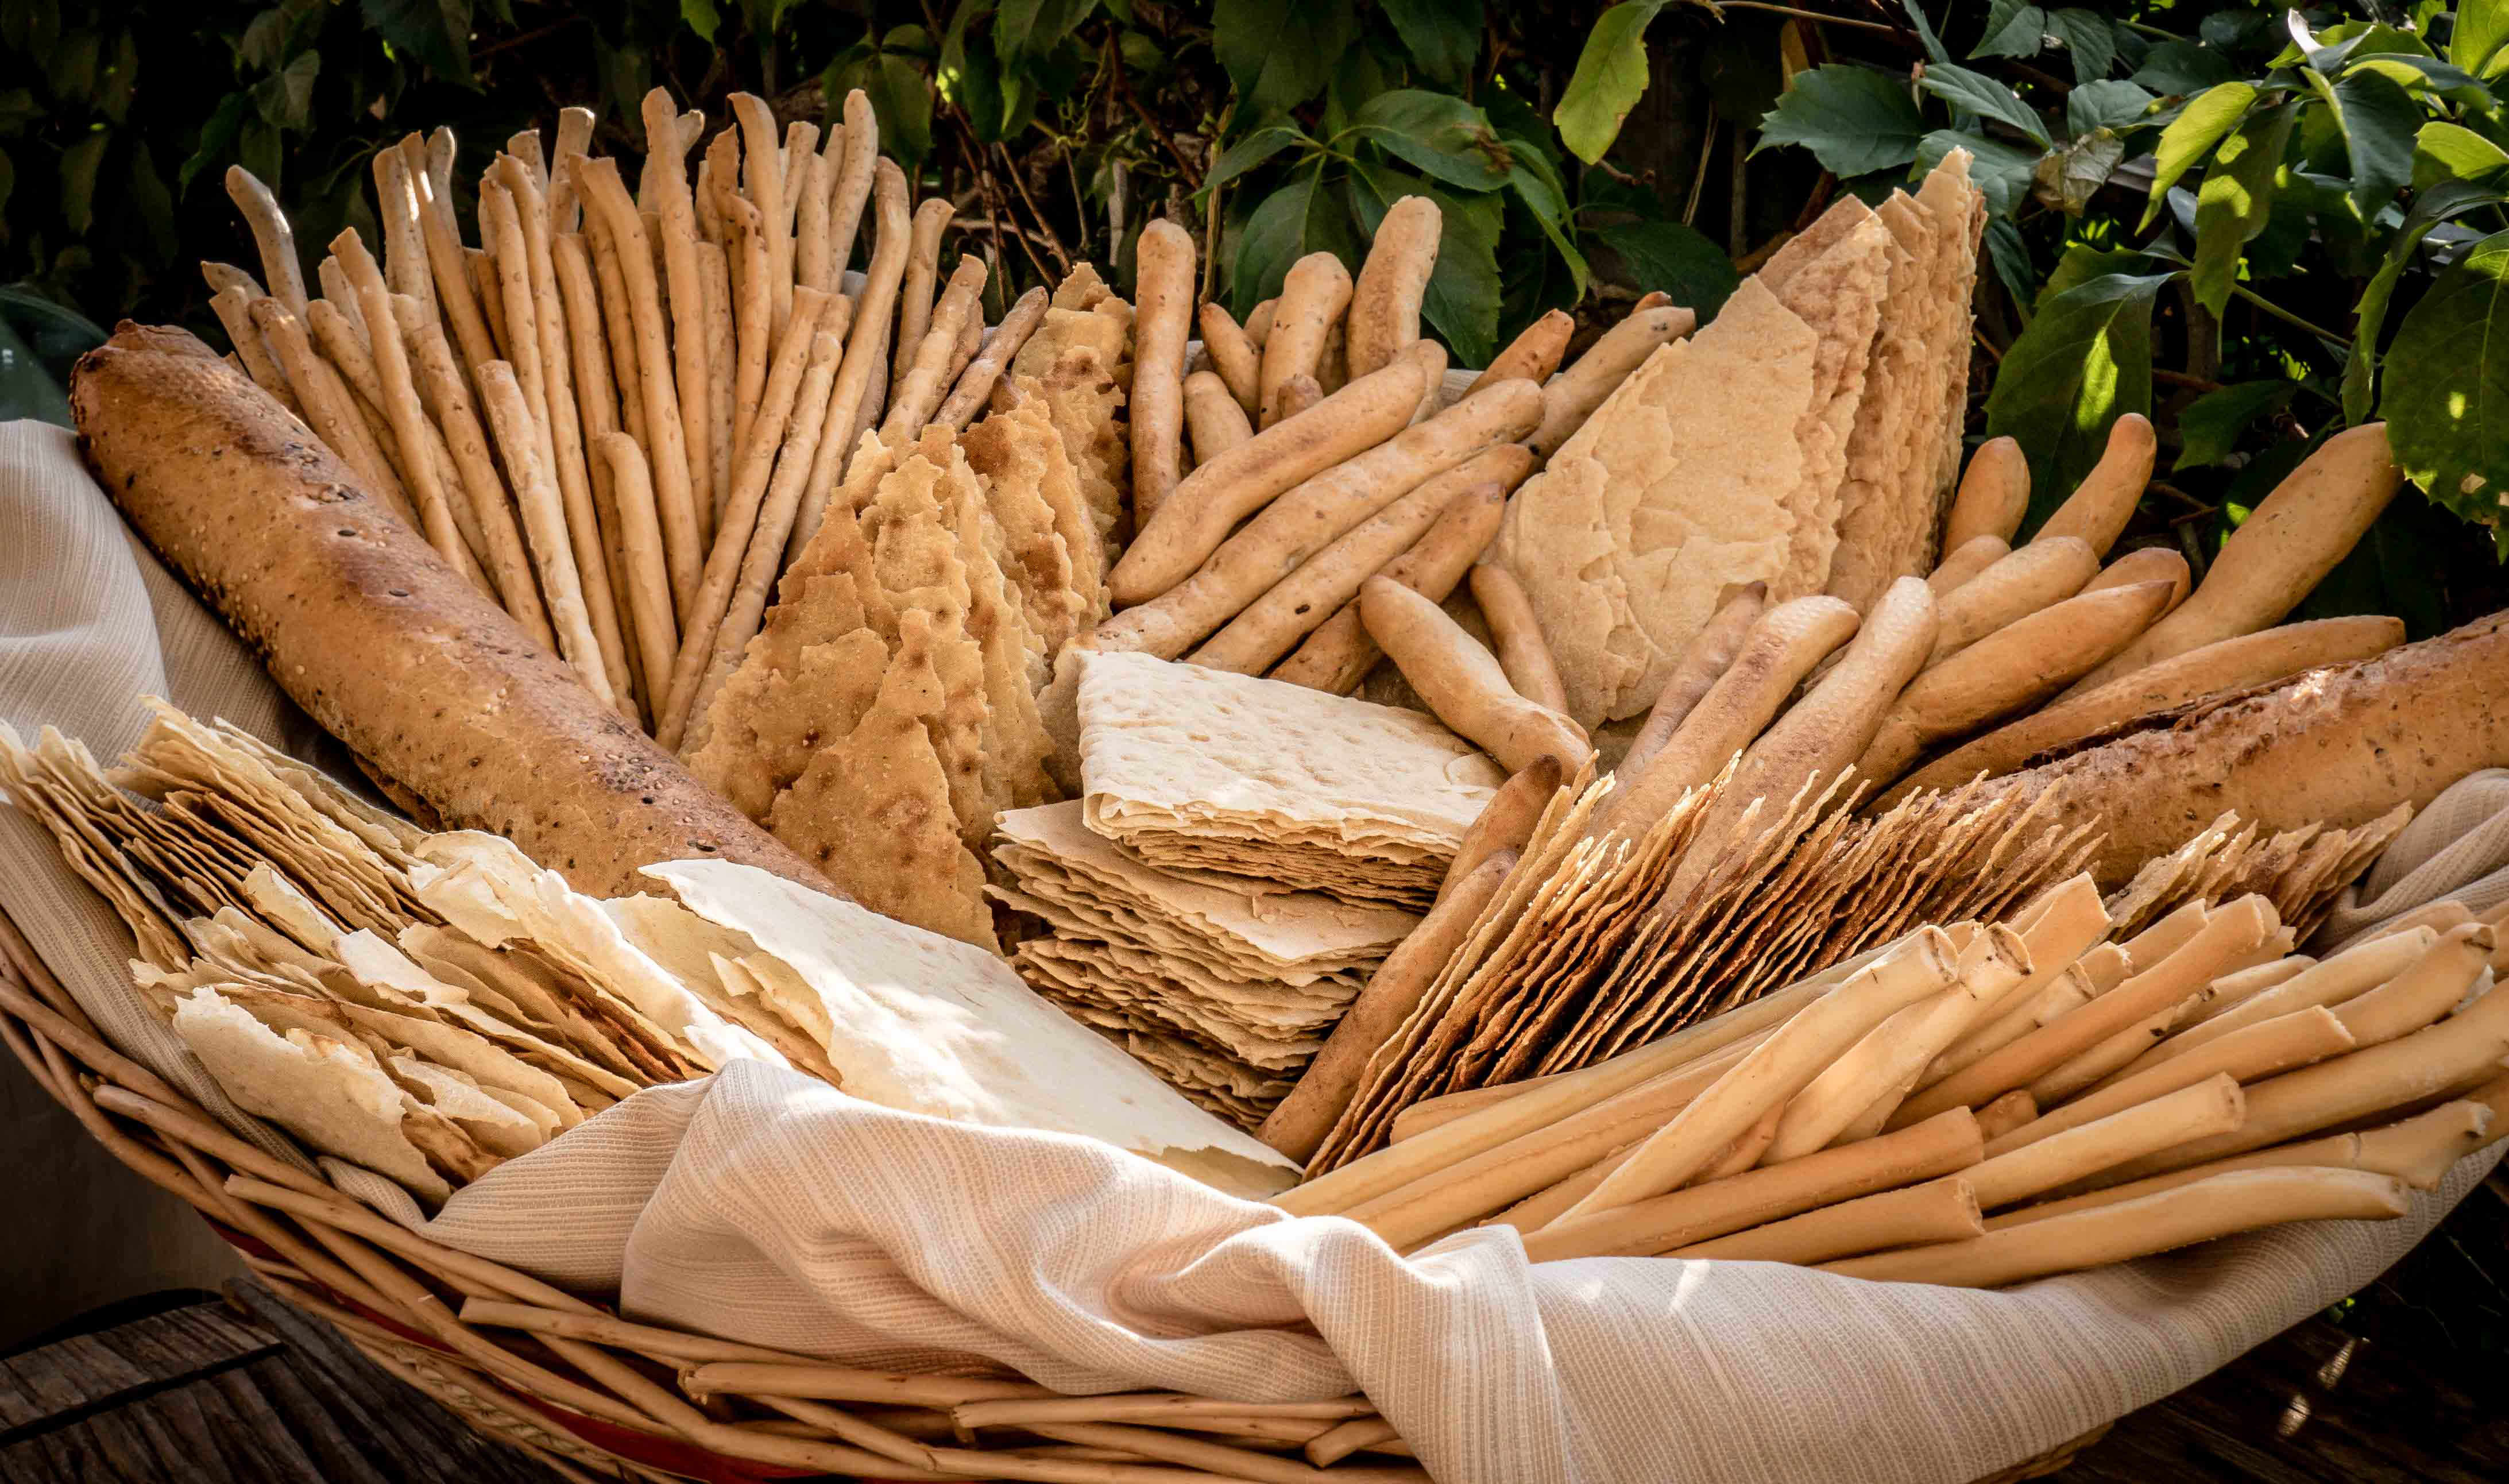 Discover the bread of Sardinia